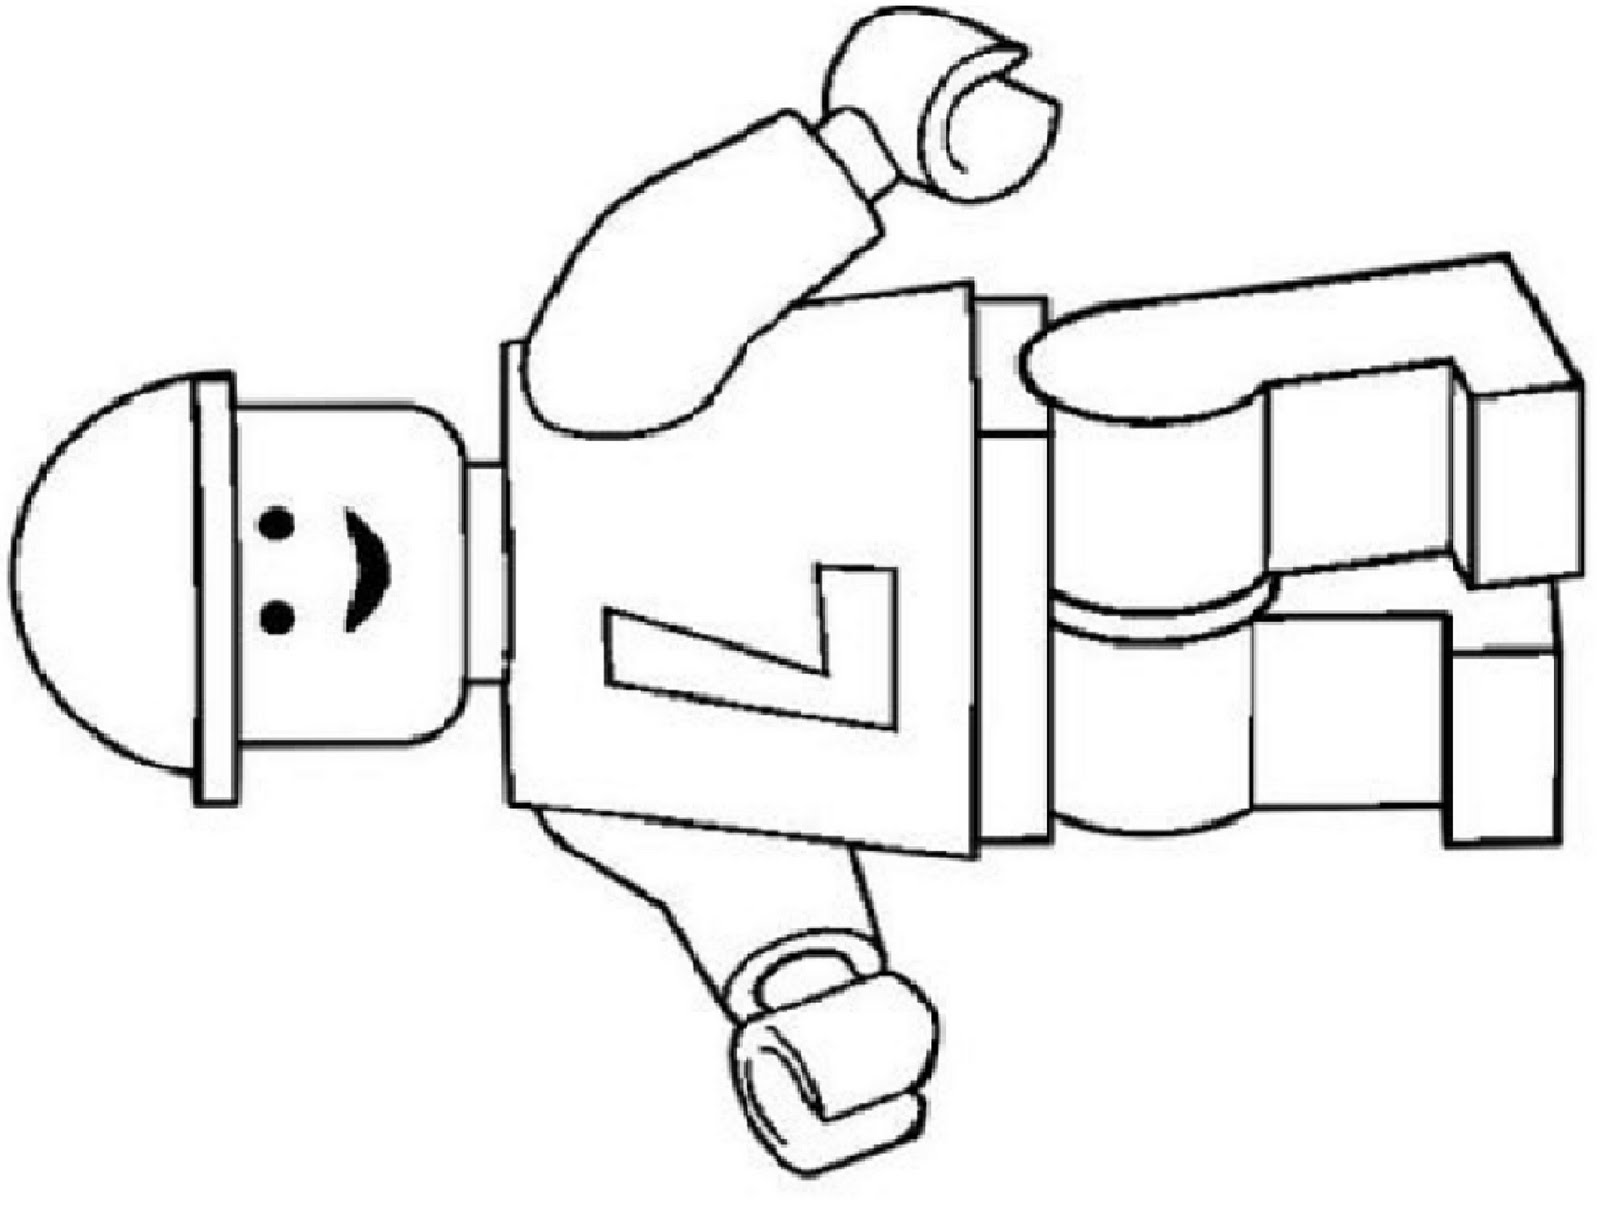 Lego Iron Man Spiderman Coloring Page Spiderman Coloring Page Lego